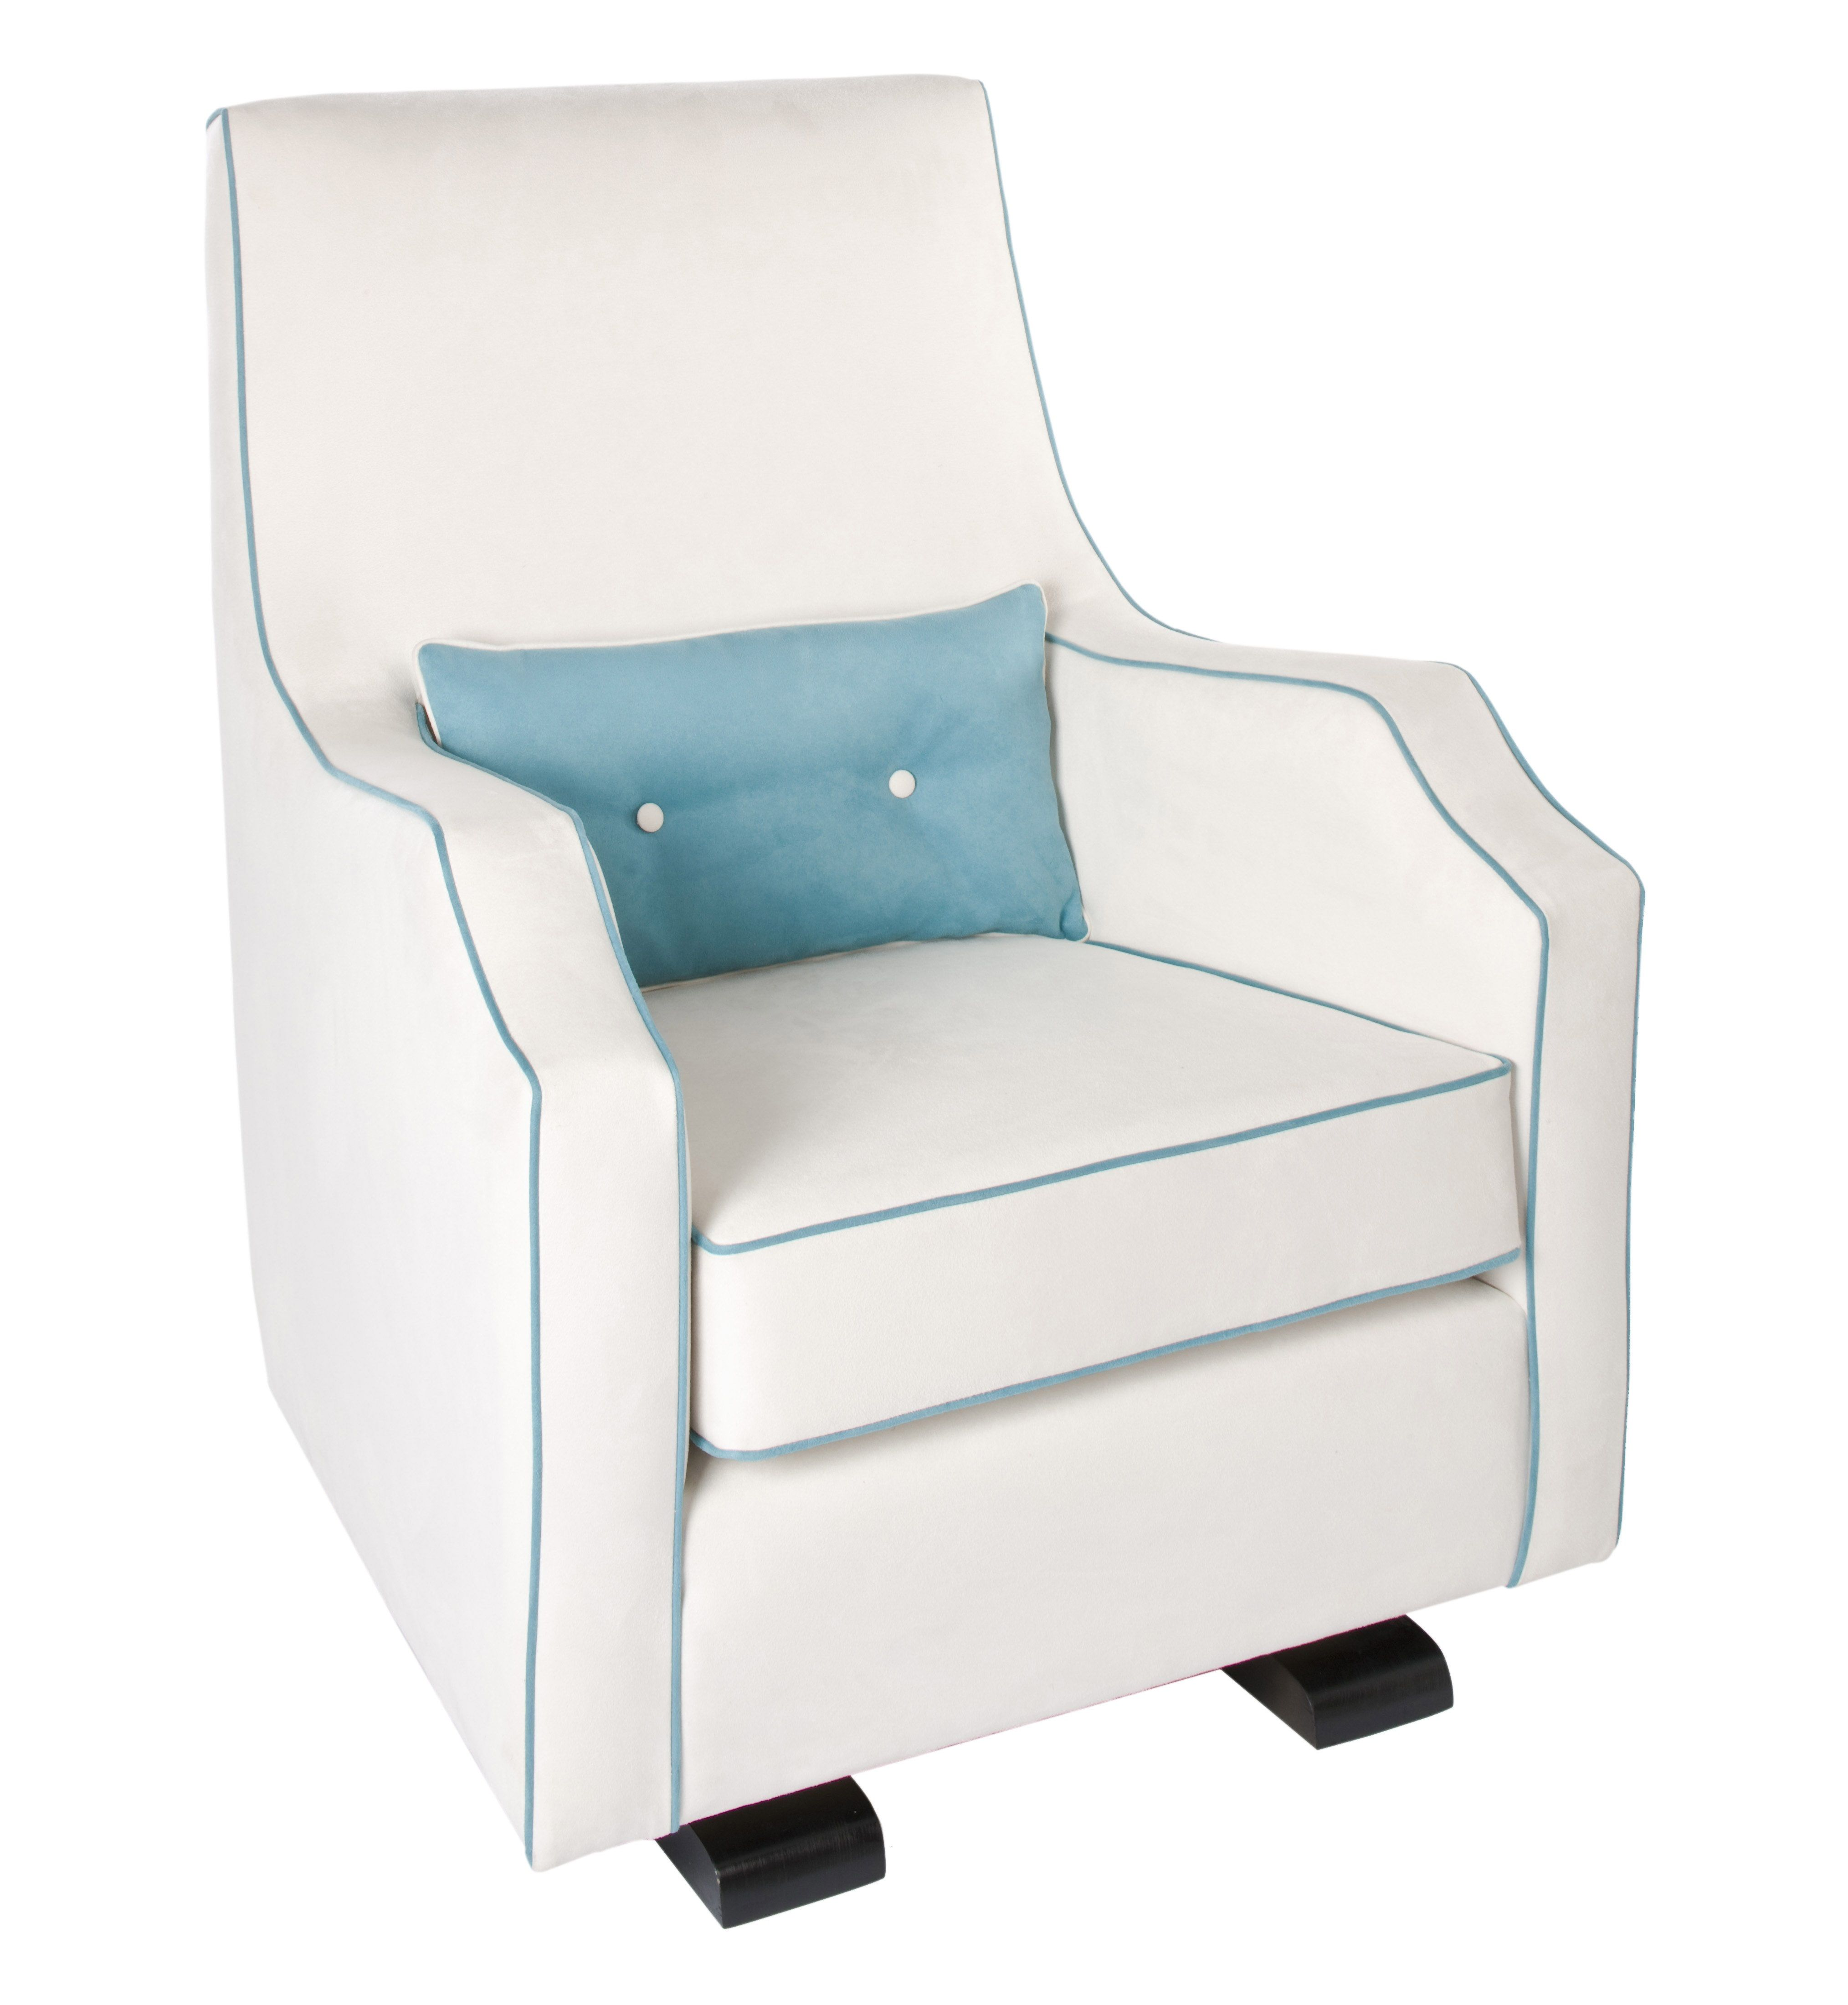 Shop For Olli Ella Mo Ma Gliding Nursing Chair At Australiau0027s Online Baby  Store The Baby Closet.